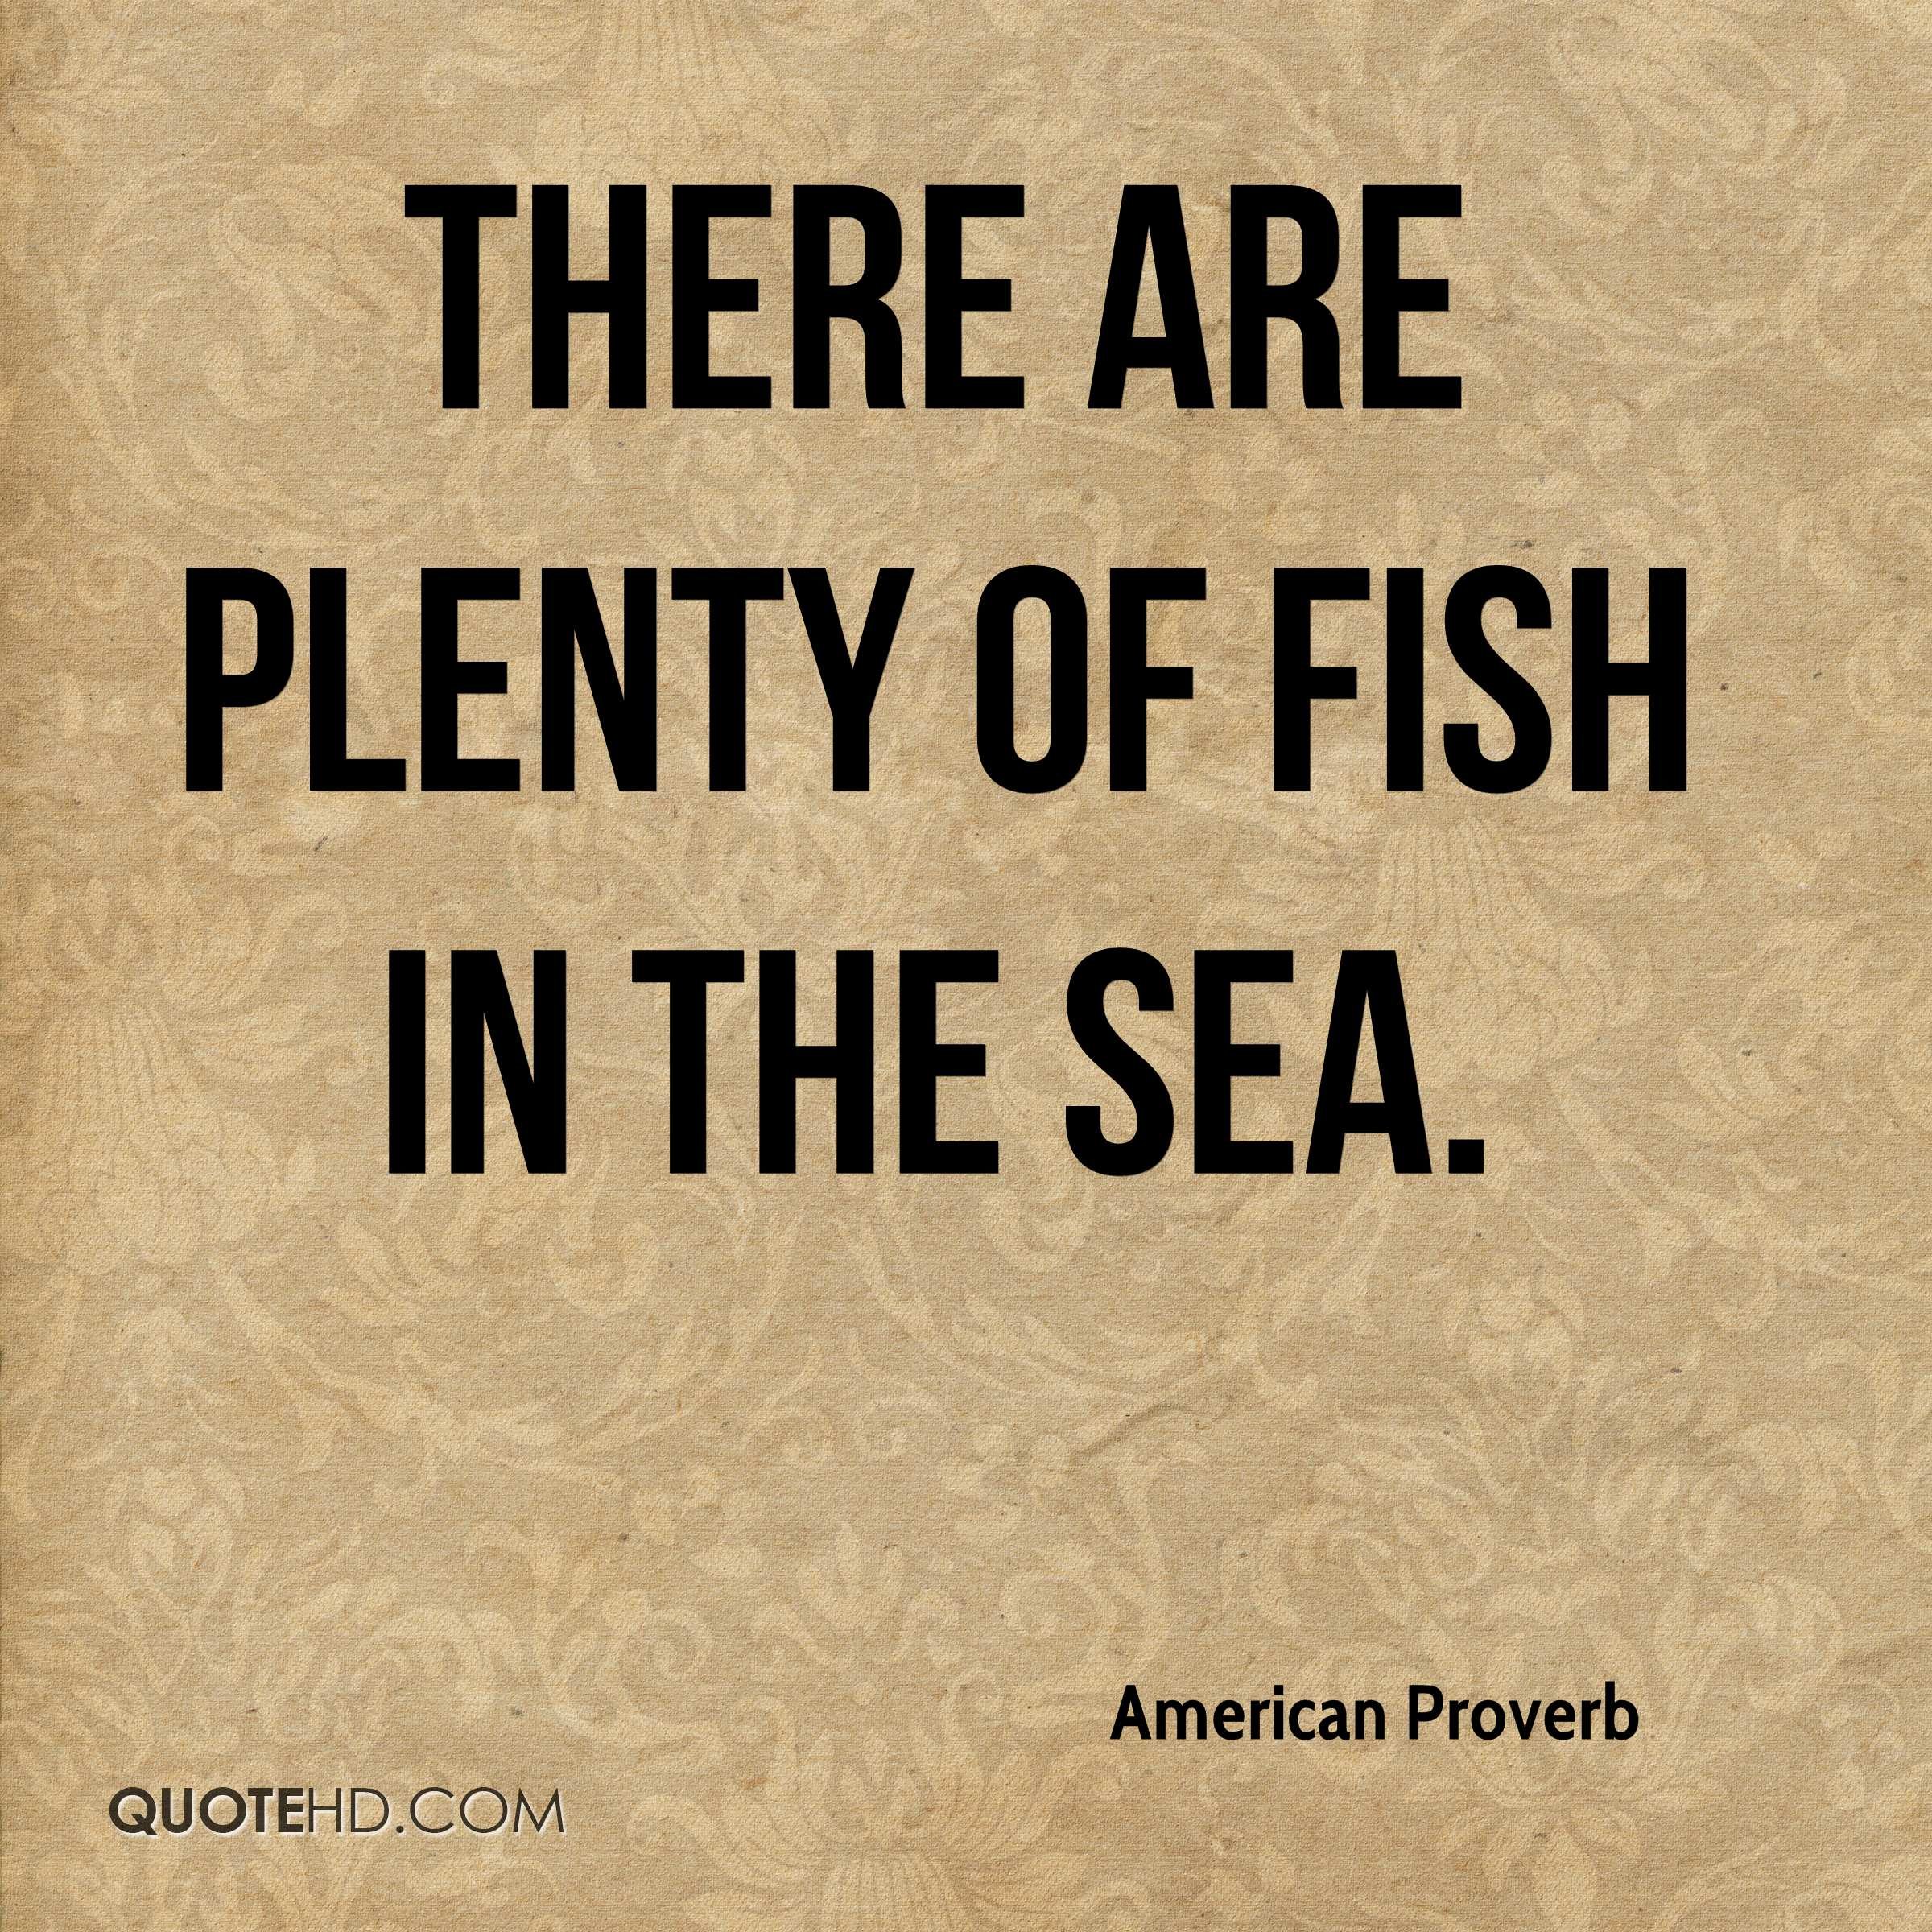 American proverb quotes quotehd for Plenty of fish in the sea